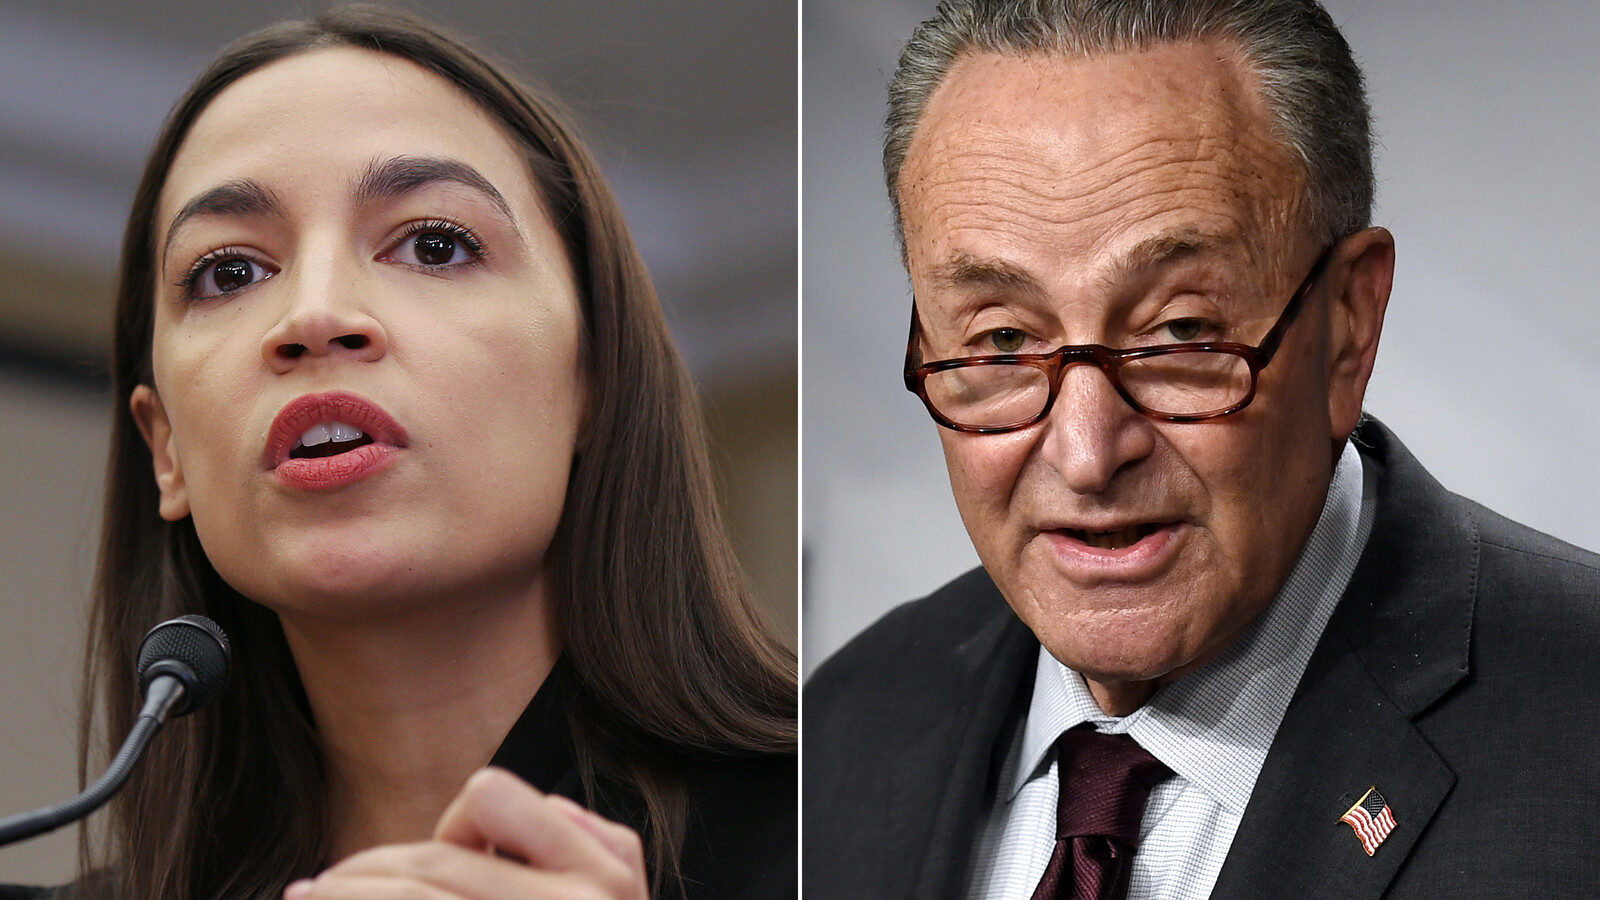 Alexandria Ocasio-Cortez does not rule out 2022 challenge to Chuck Schumer